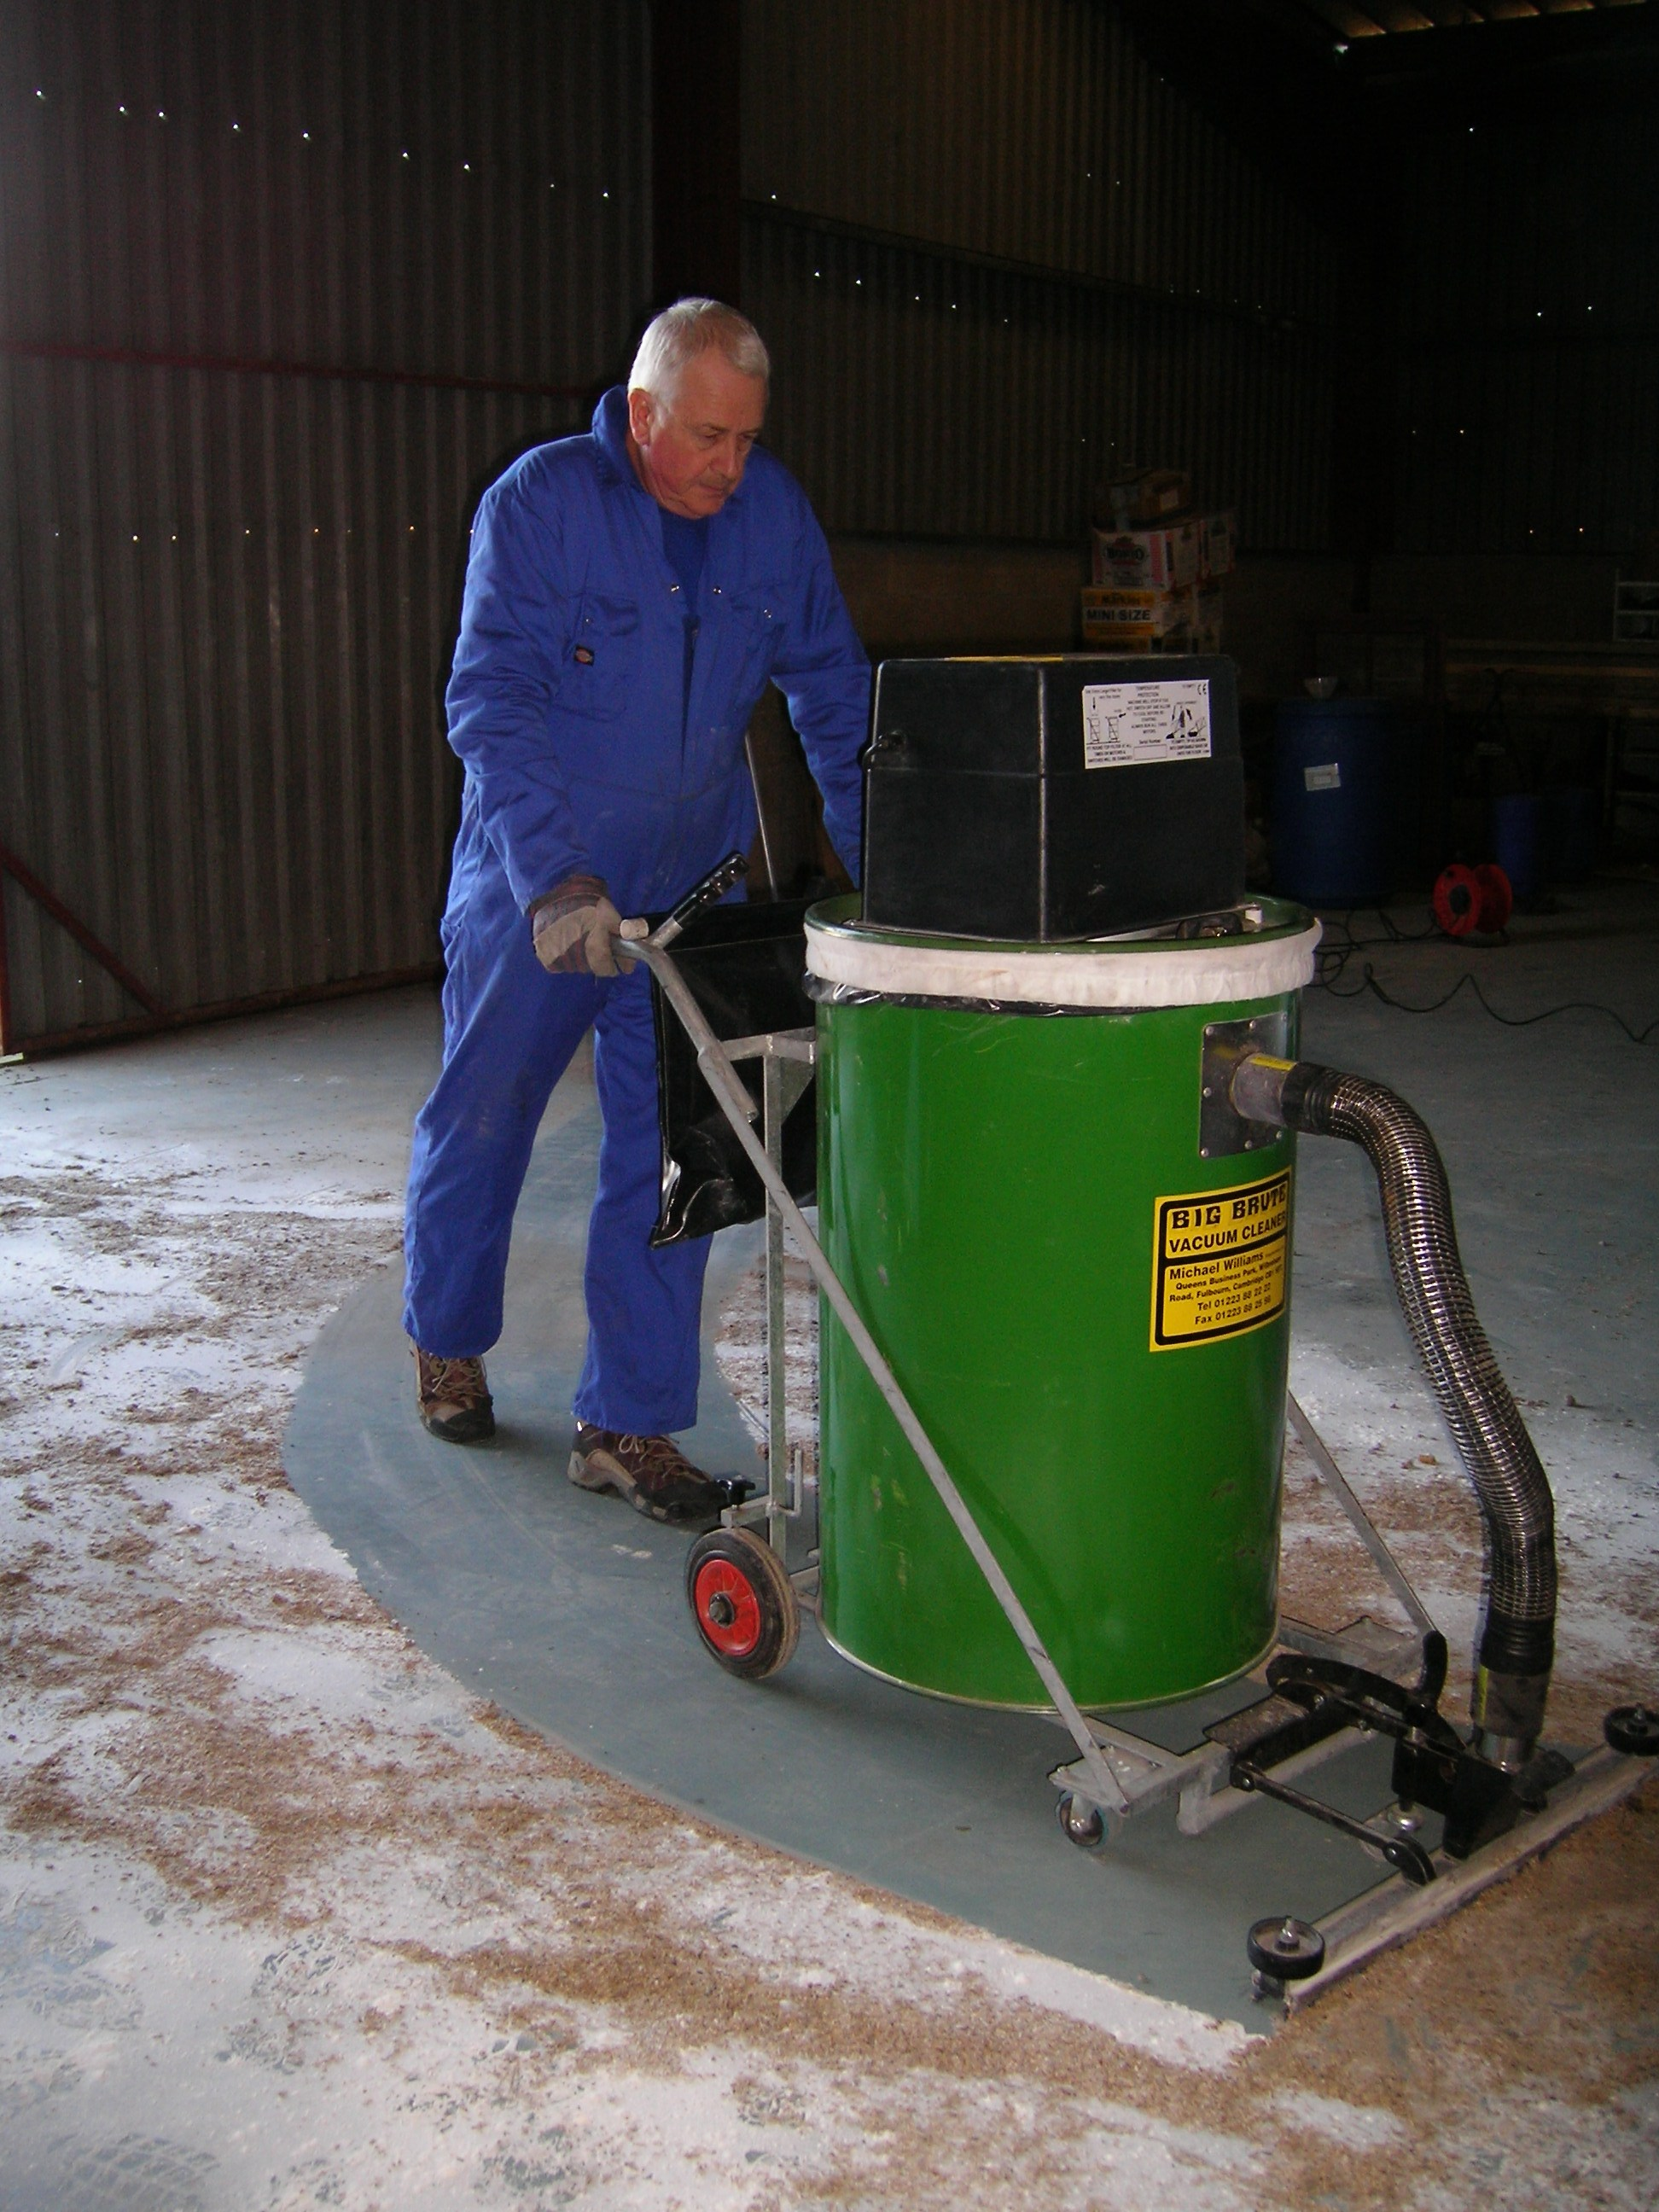 Big Brute Warehouseman Cleaning A Dusty Floor